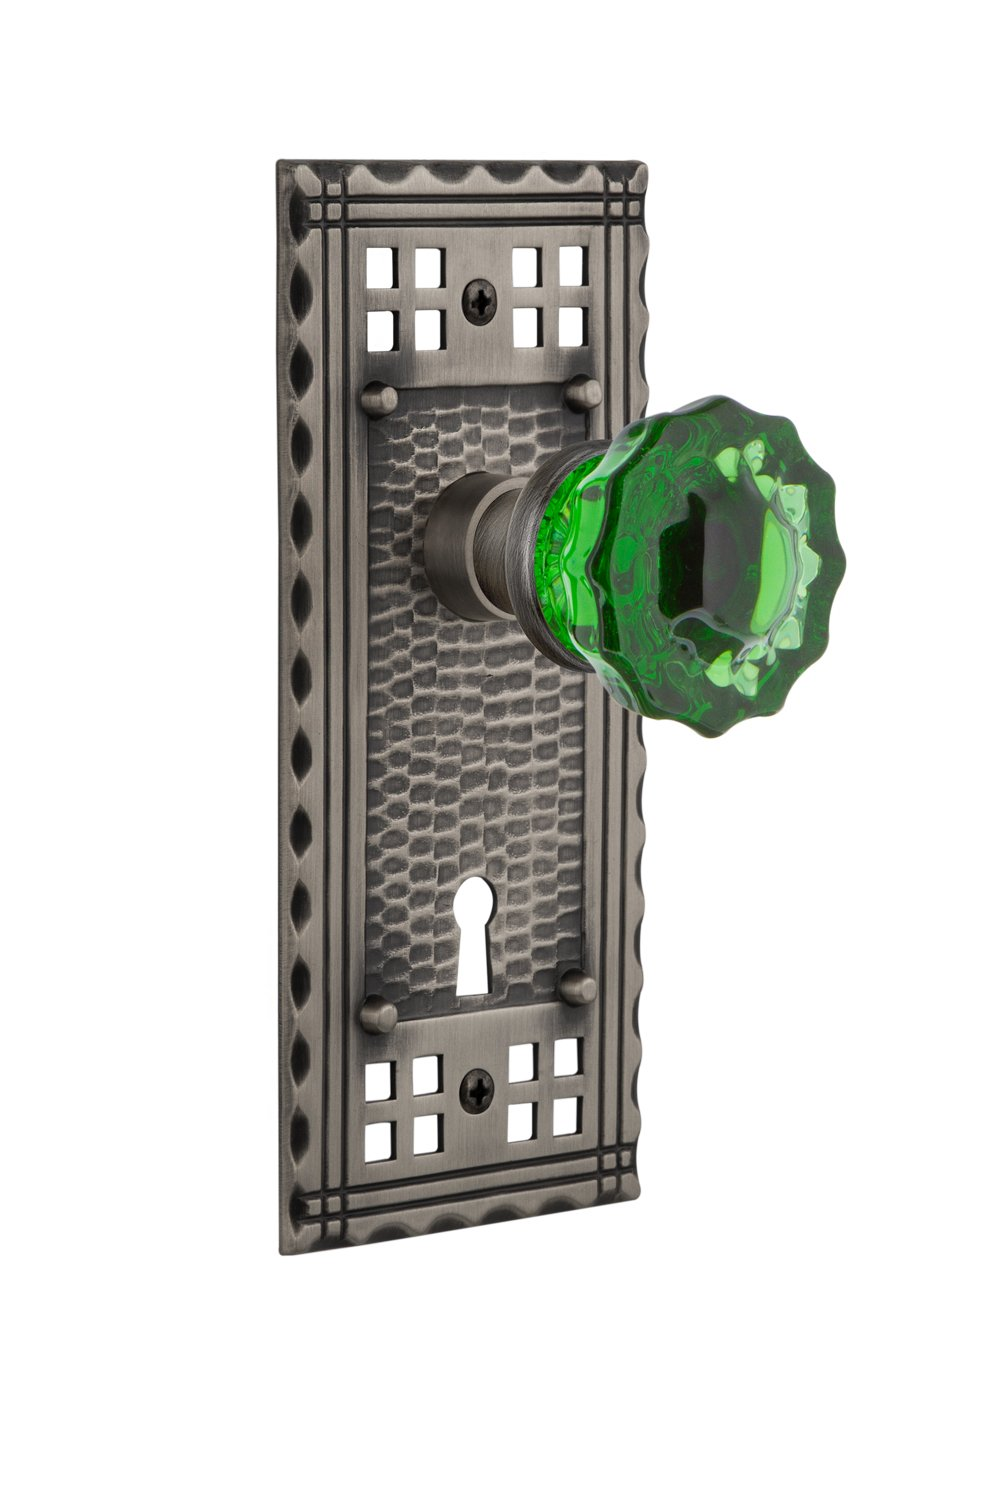 Privacy 2.375 Timeless Bronze Nostalgic Warehouse Craftsman Plate with Keyhole Crystal Emerald Glass Door Knob